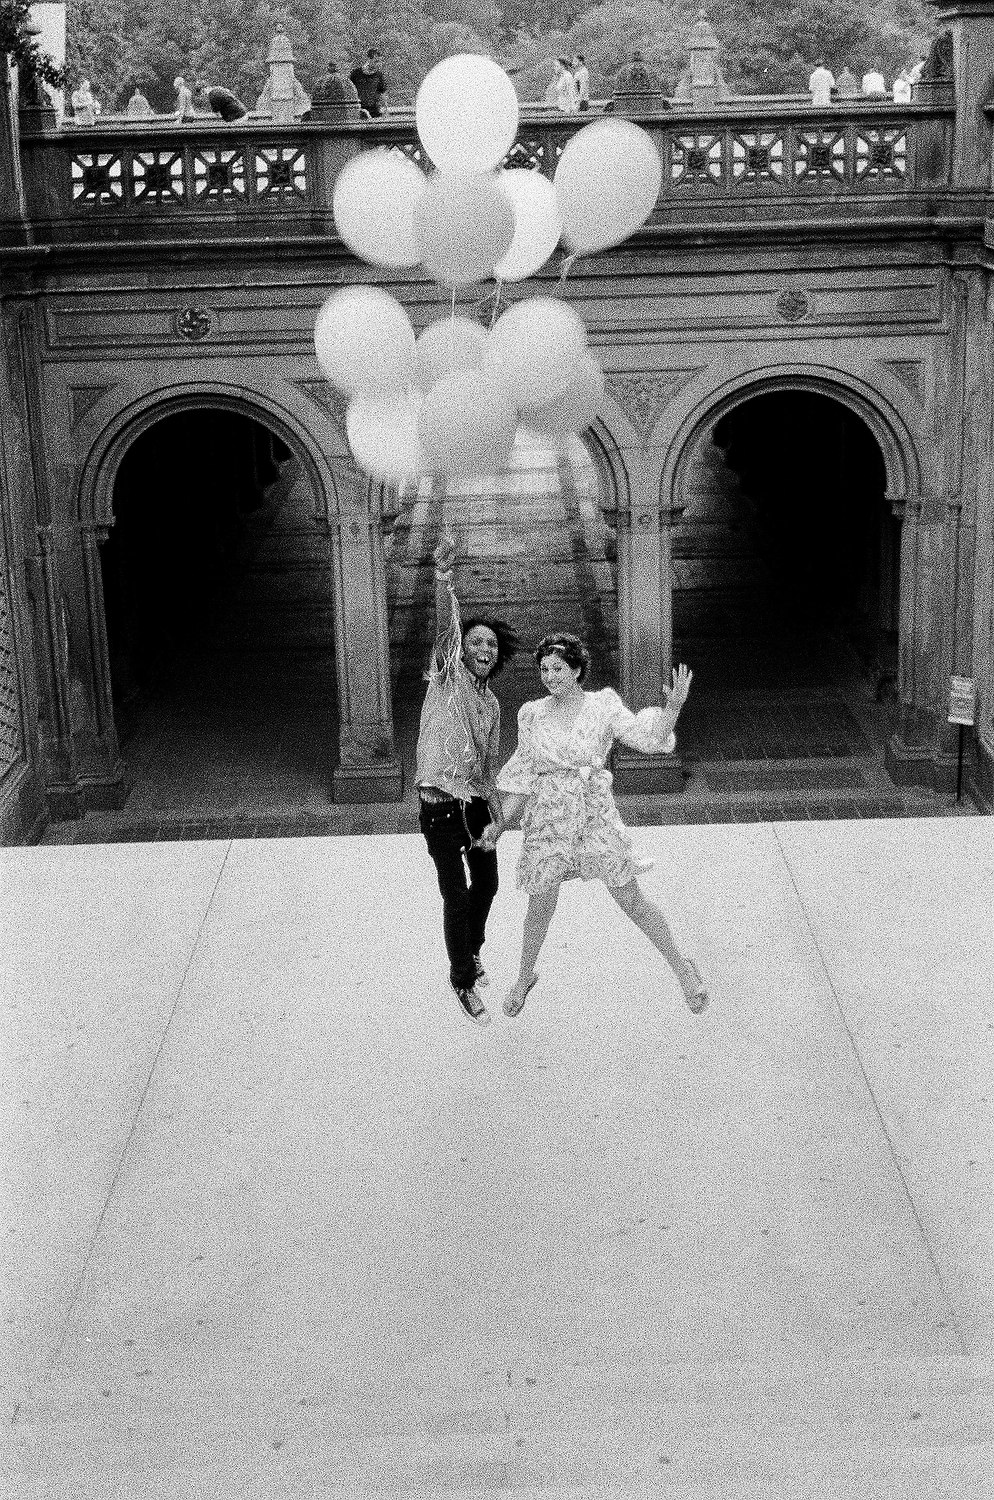 black and white photo of couple being carried away by balloons